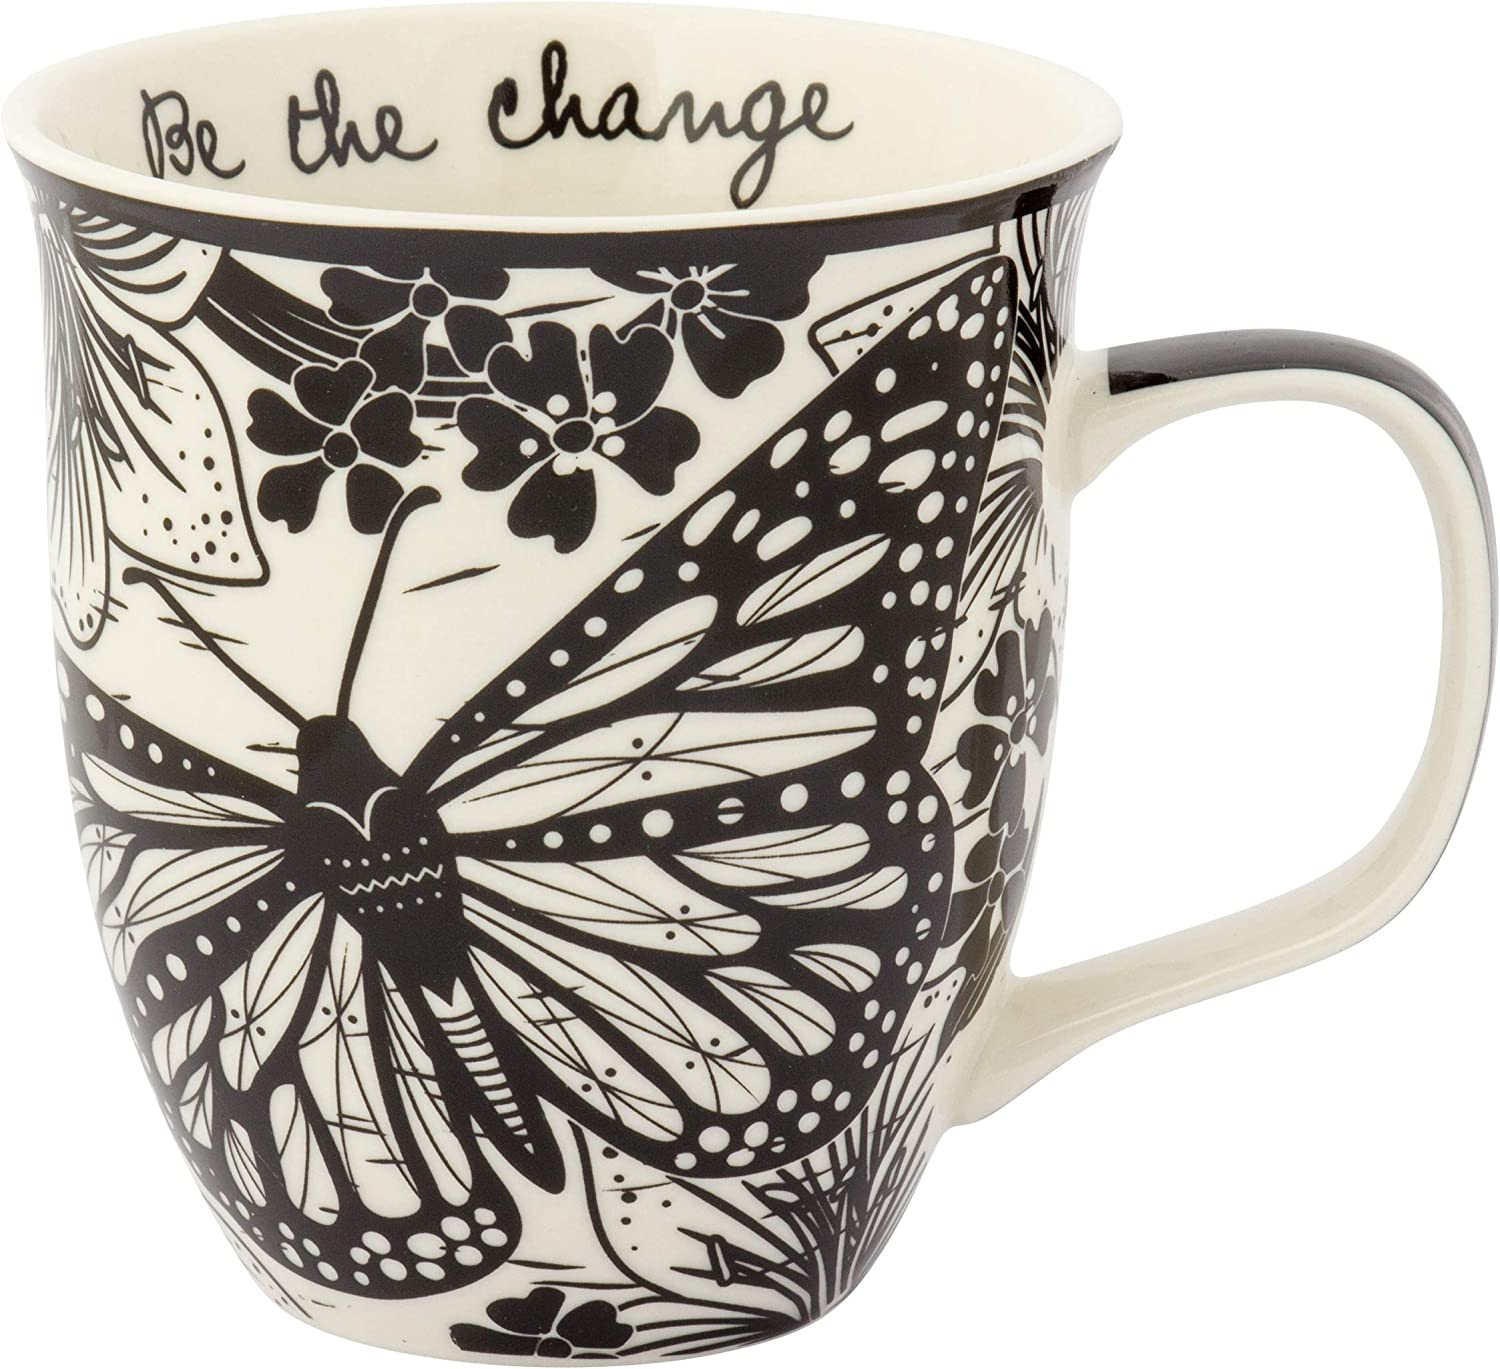 Nothing beats morning coffee in a mug that is gifted to you by your loved one. This black and white mug is perfect for your loved one and she will always remember you whenever she sips something from this gorgeous mug.